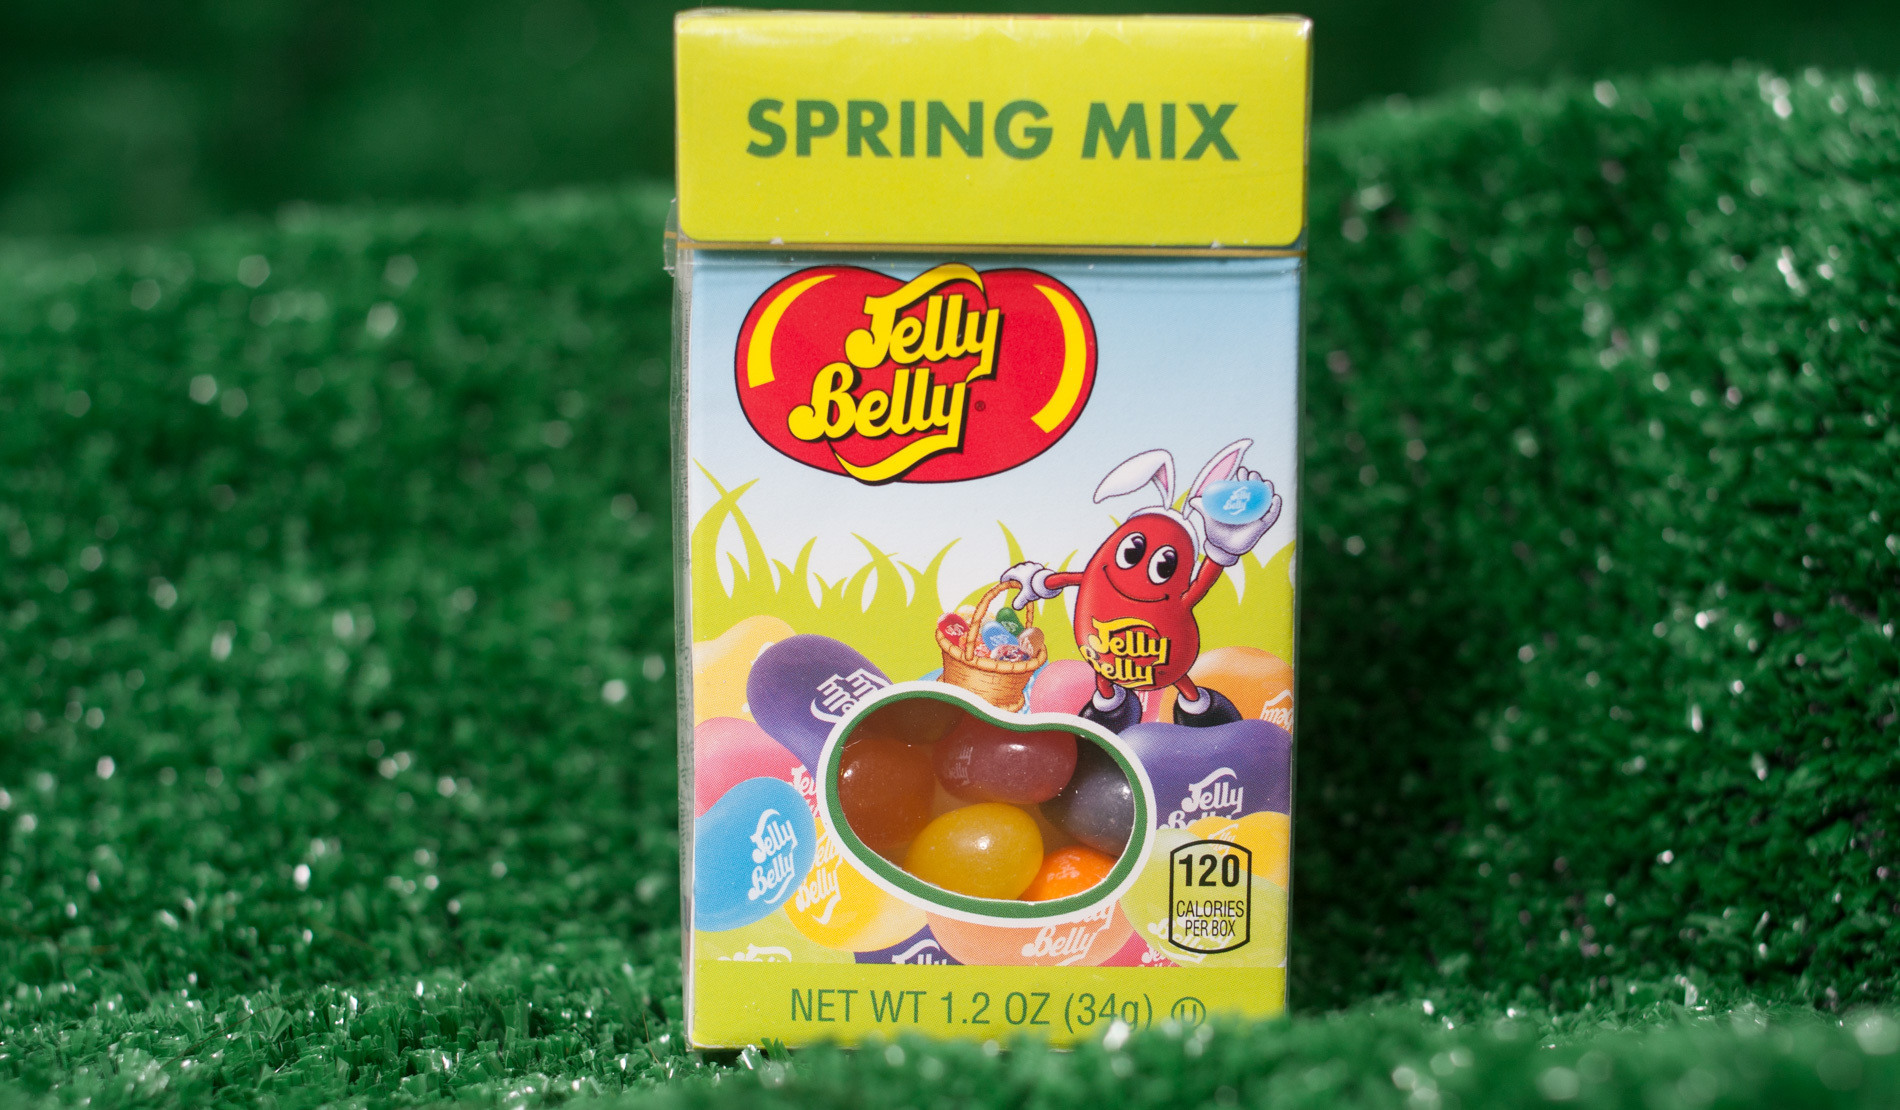 Jelly Belly Spring Mix, $1